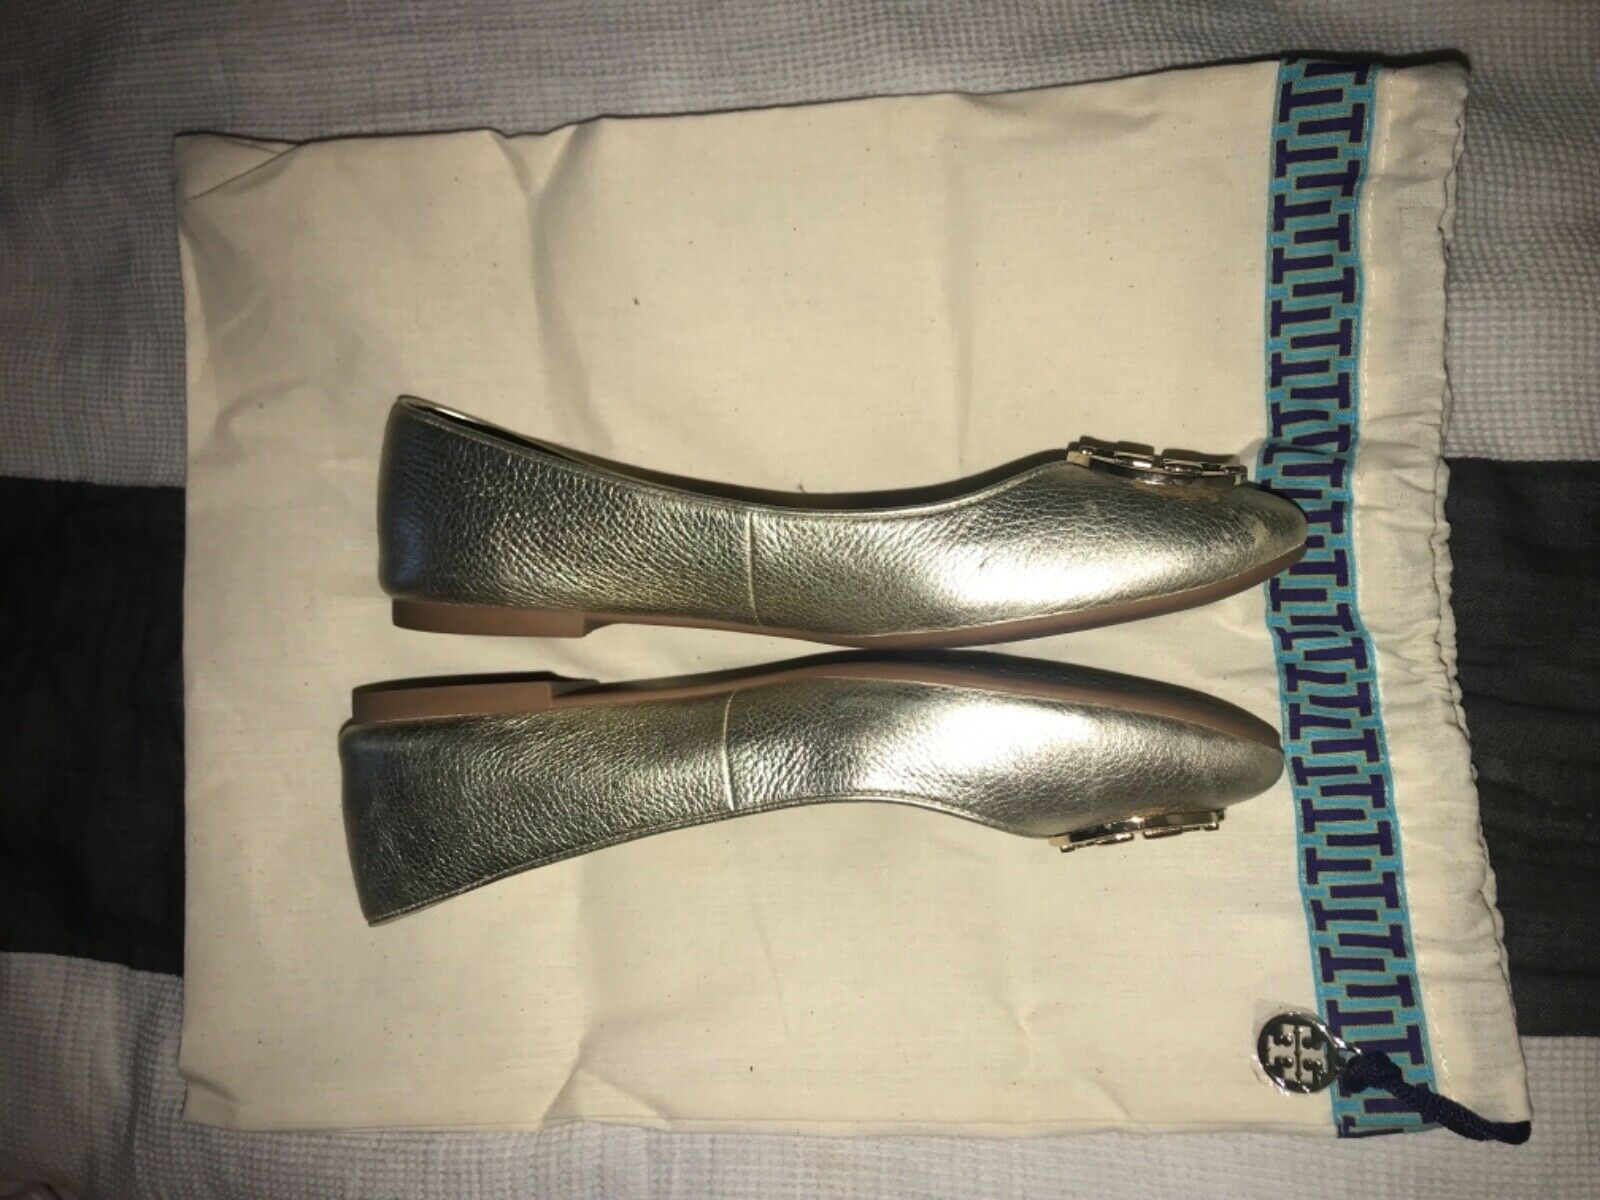 Tory Burch Claire Ballerina Flat - image 3